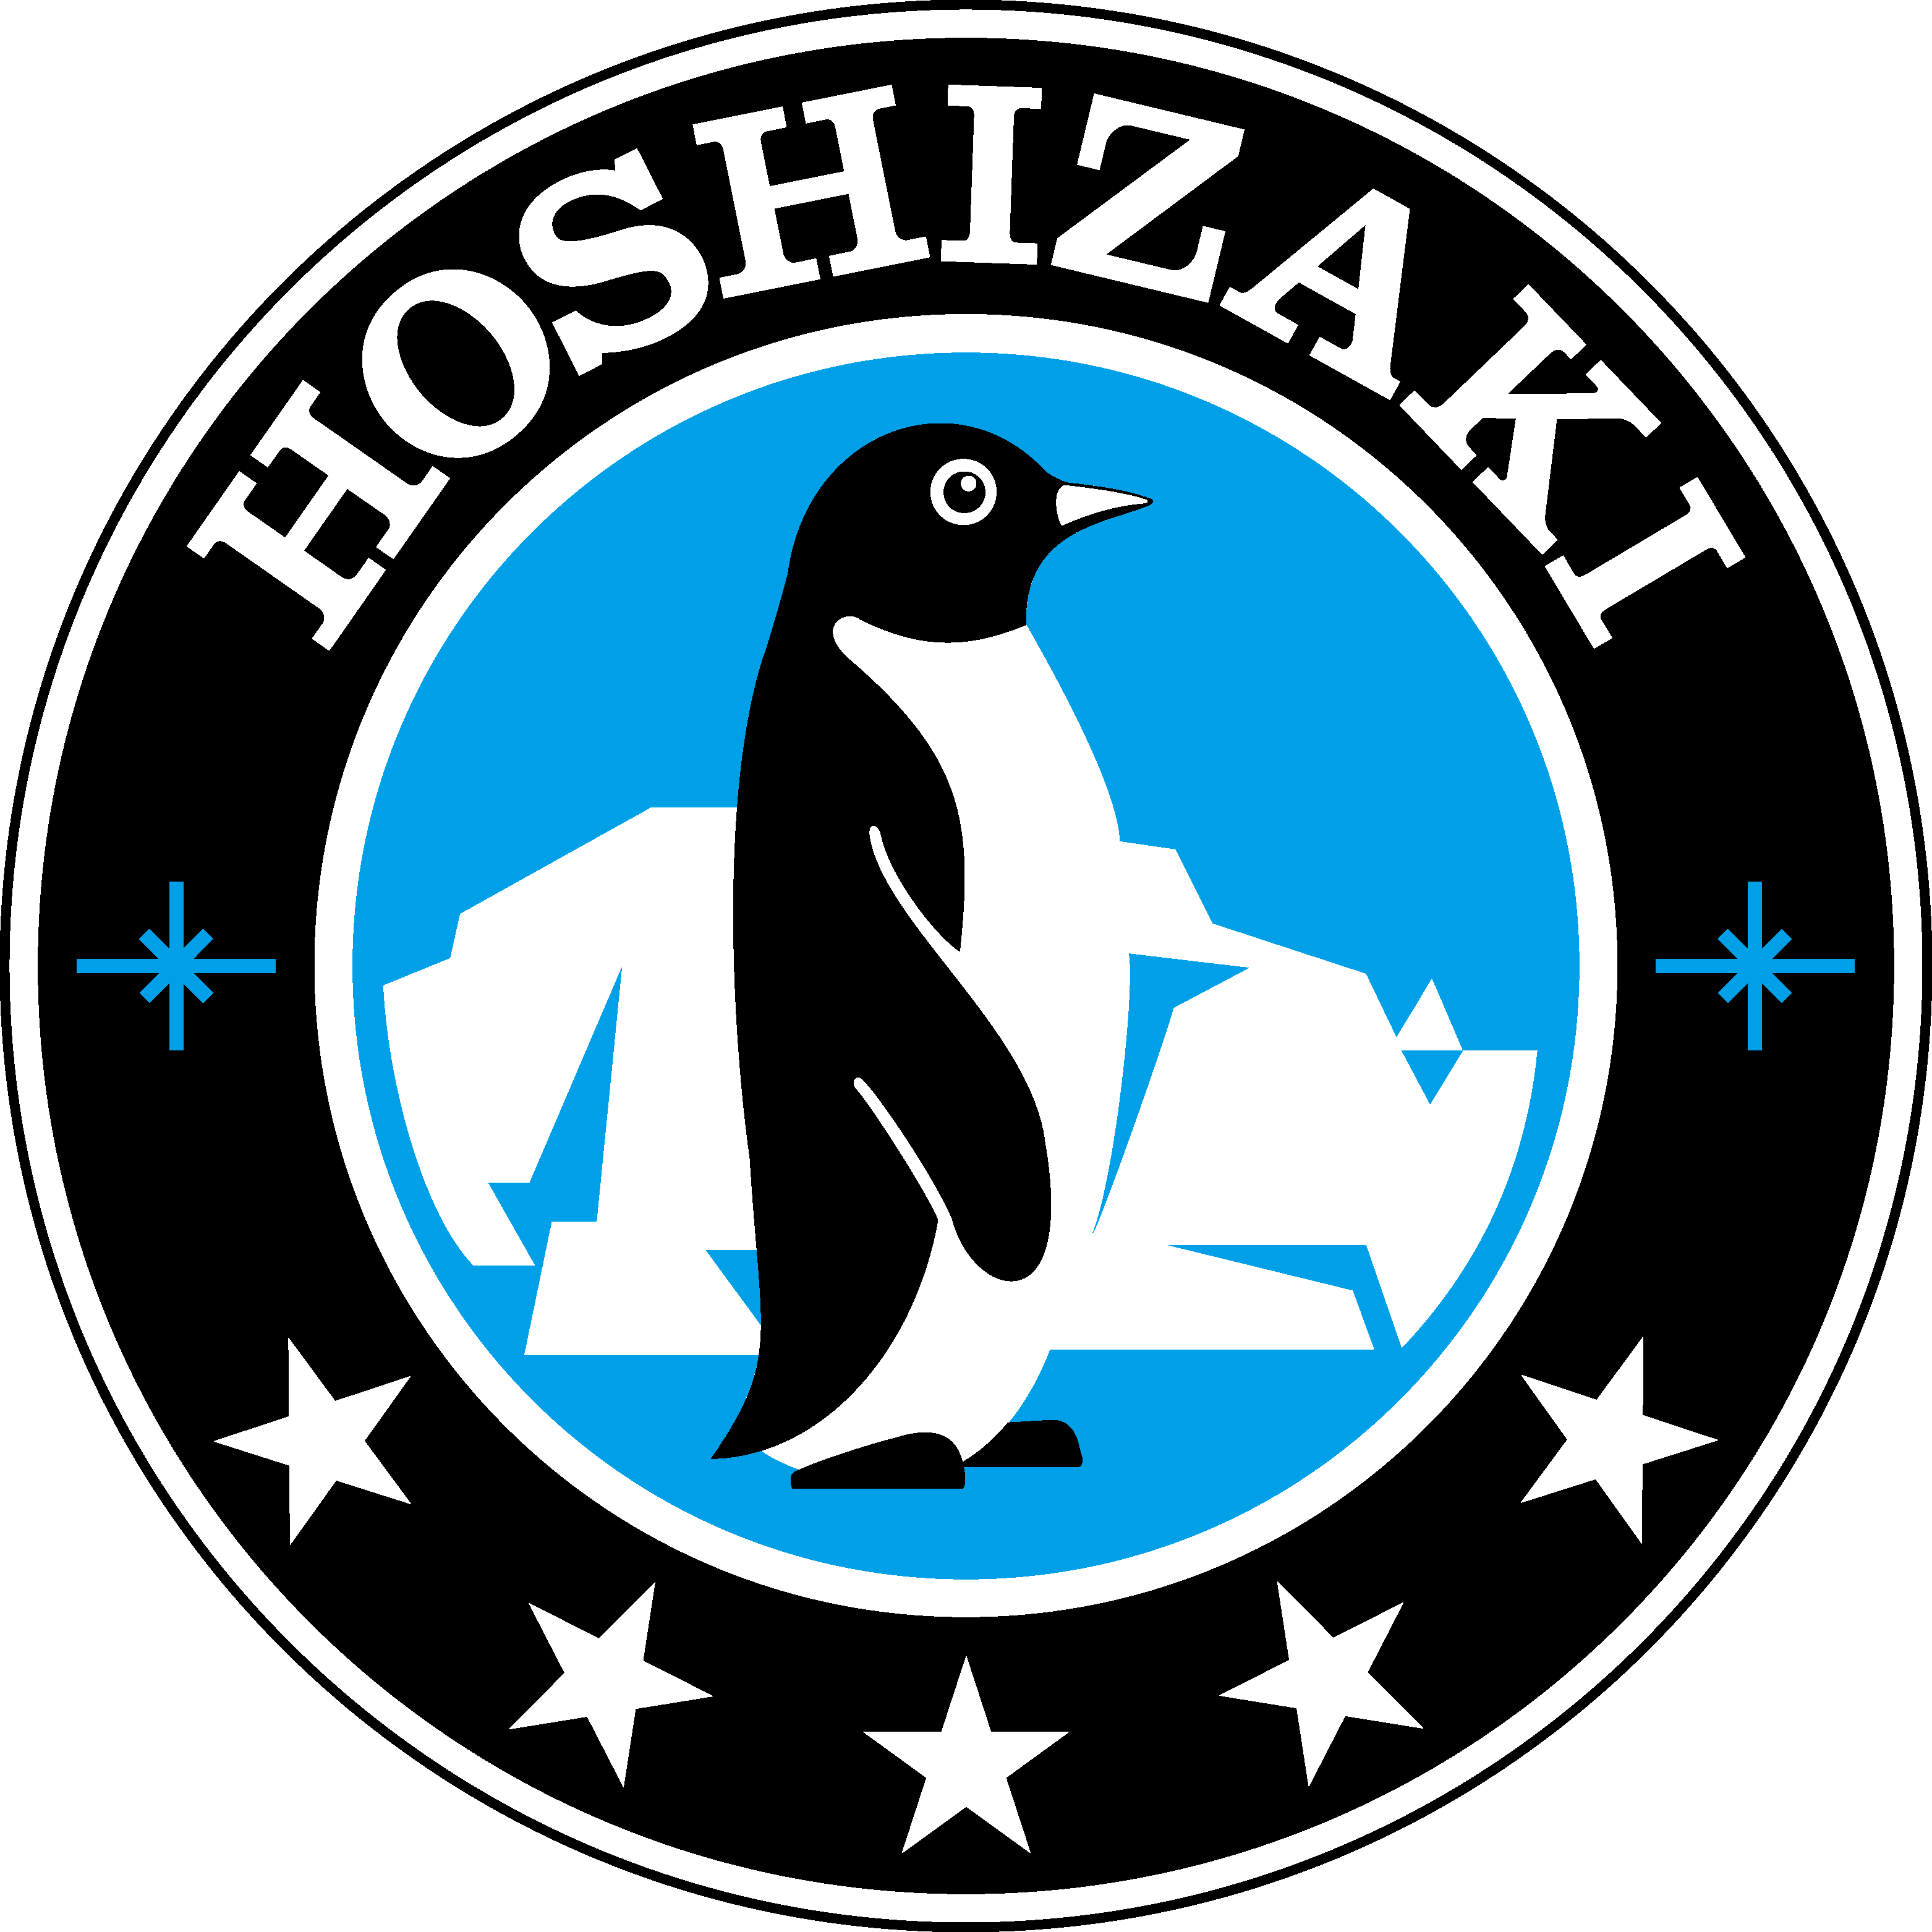 Shop all Hoshizaki products at JES Restaurant Equipment